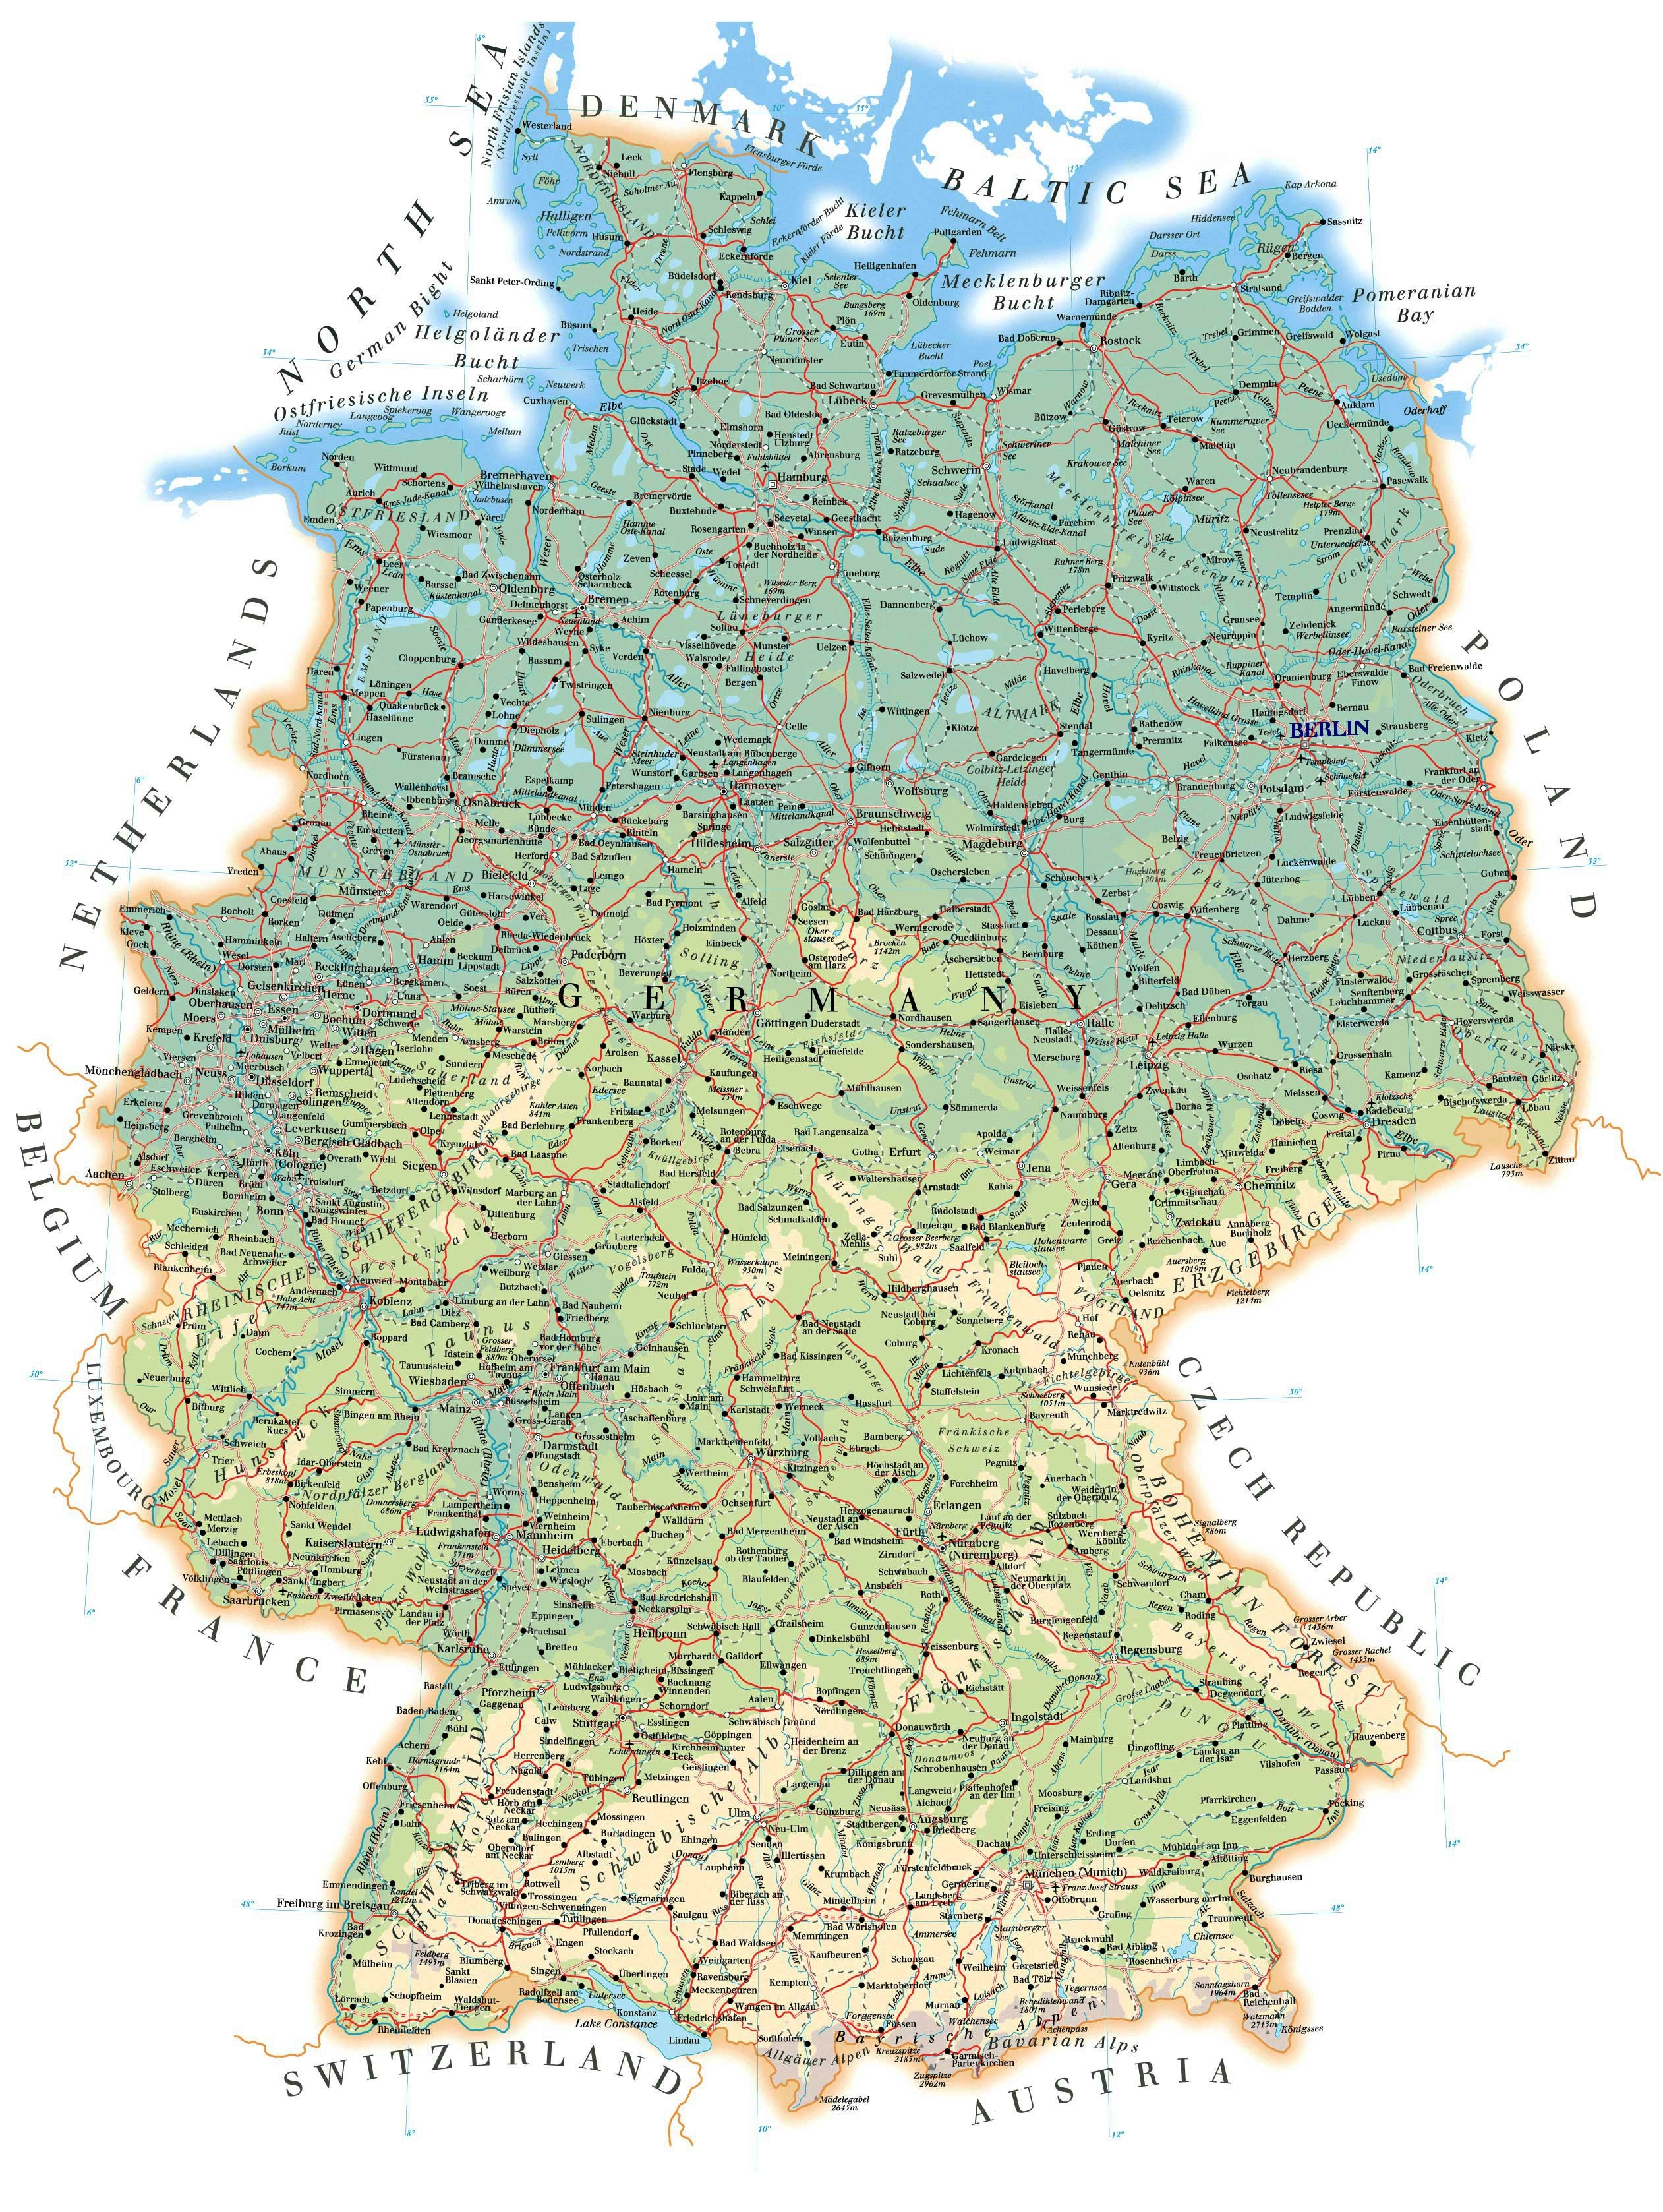 Large Detailed Road Map Of Germany With All Cities, Villages And within Germany Map With All Cities